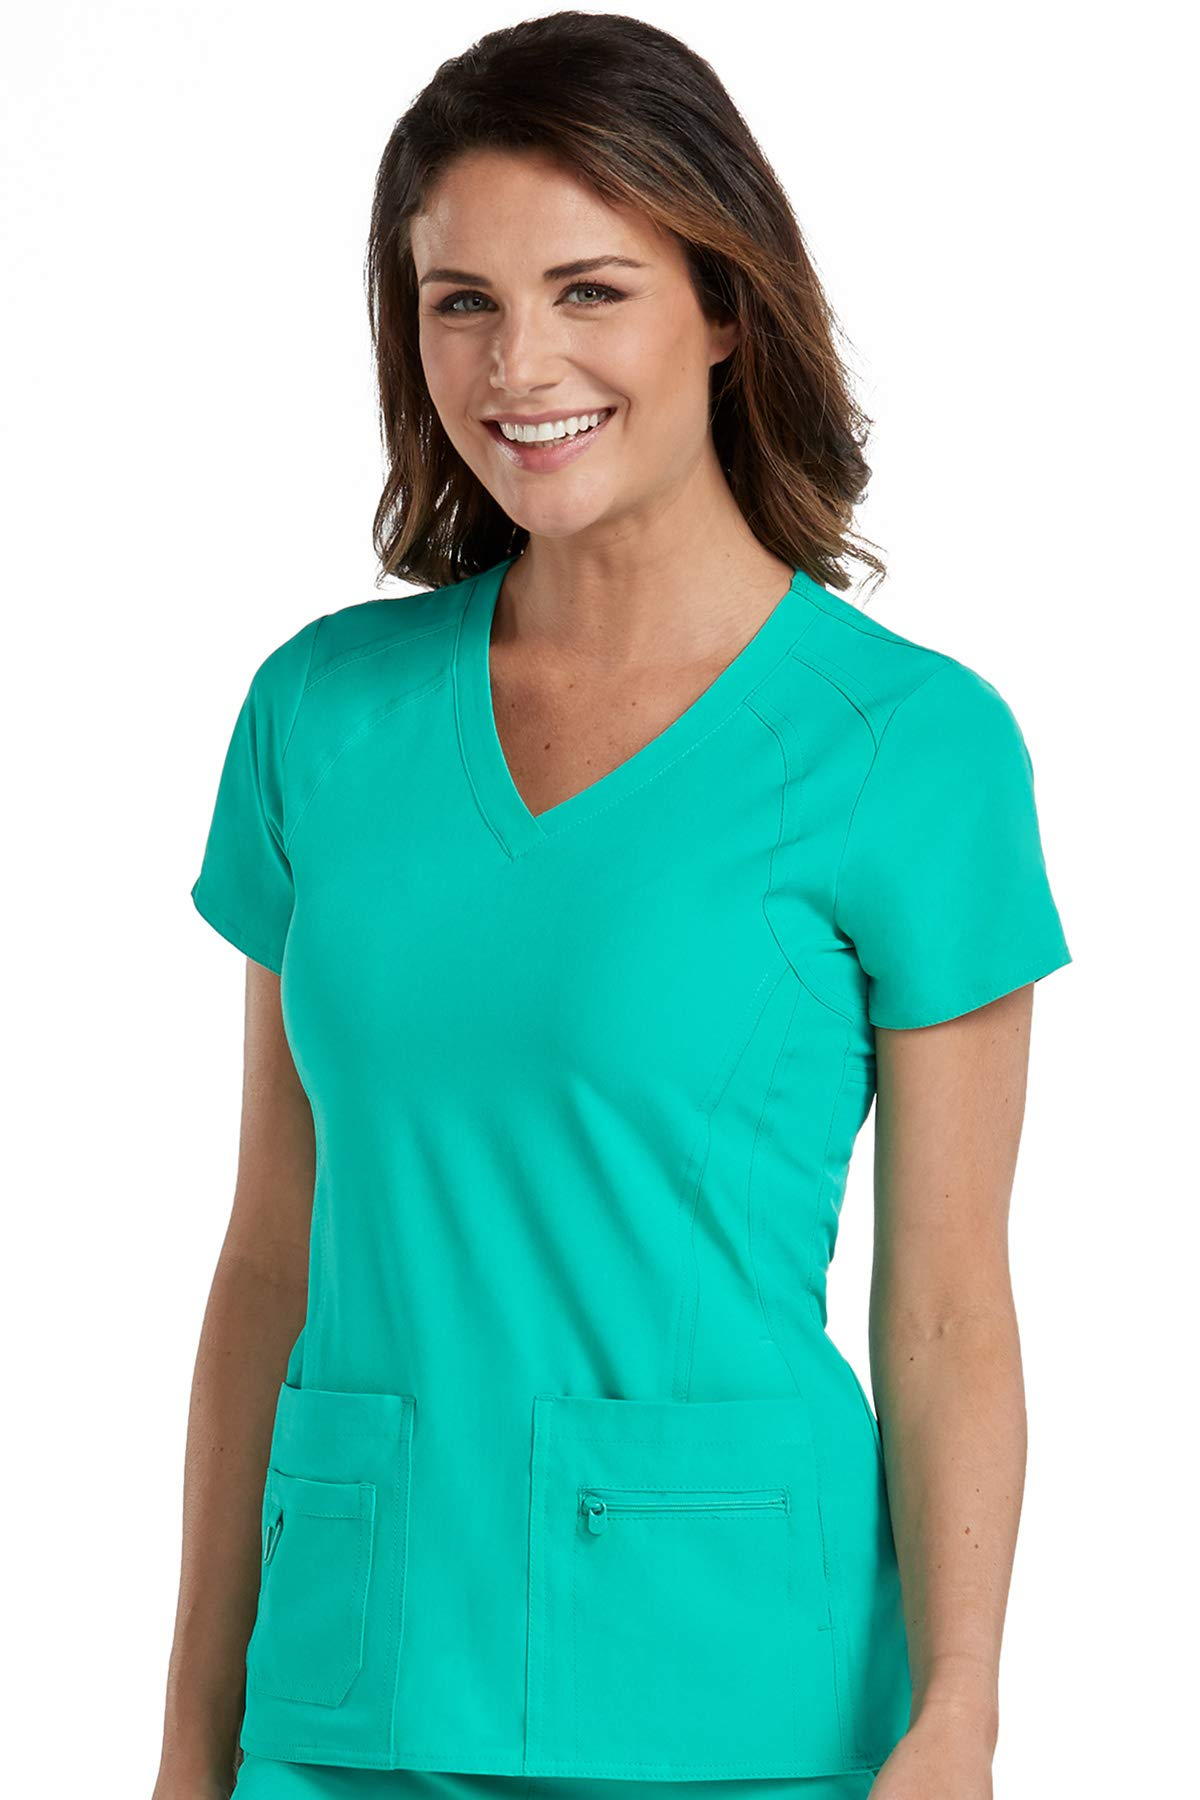 Med Couture Activate Women's V-Neck Racerback Scrub Top, Spearmint, XXX-Large